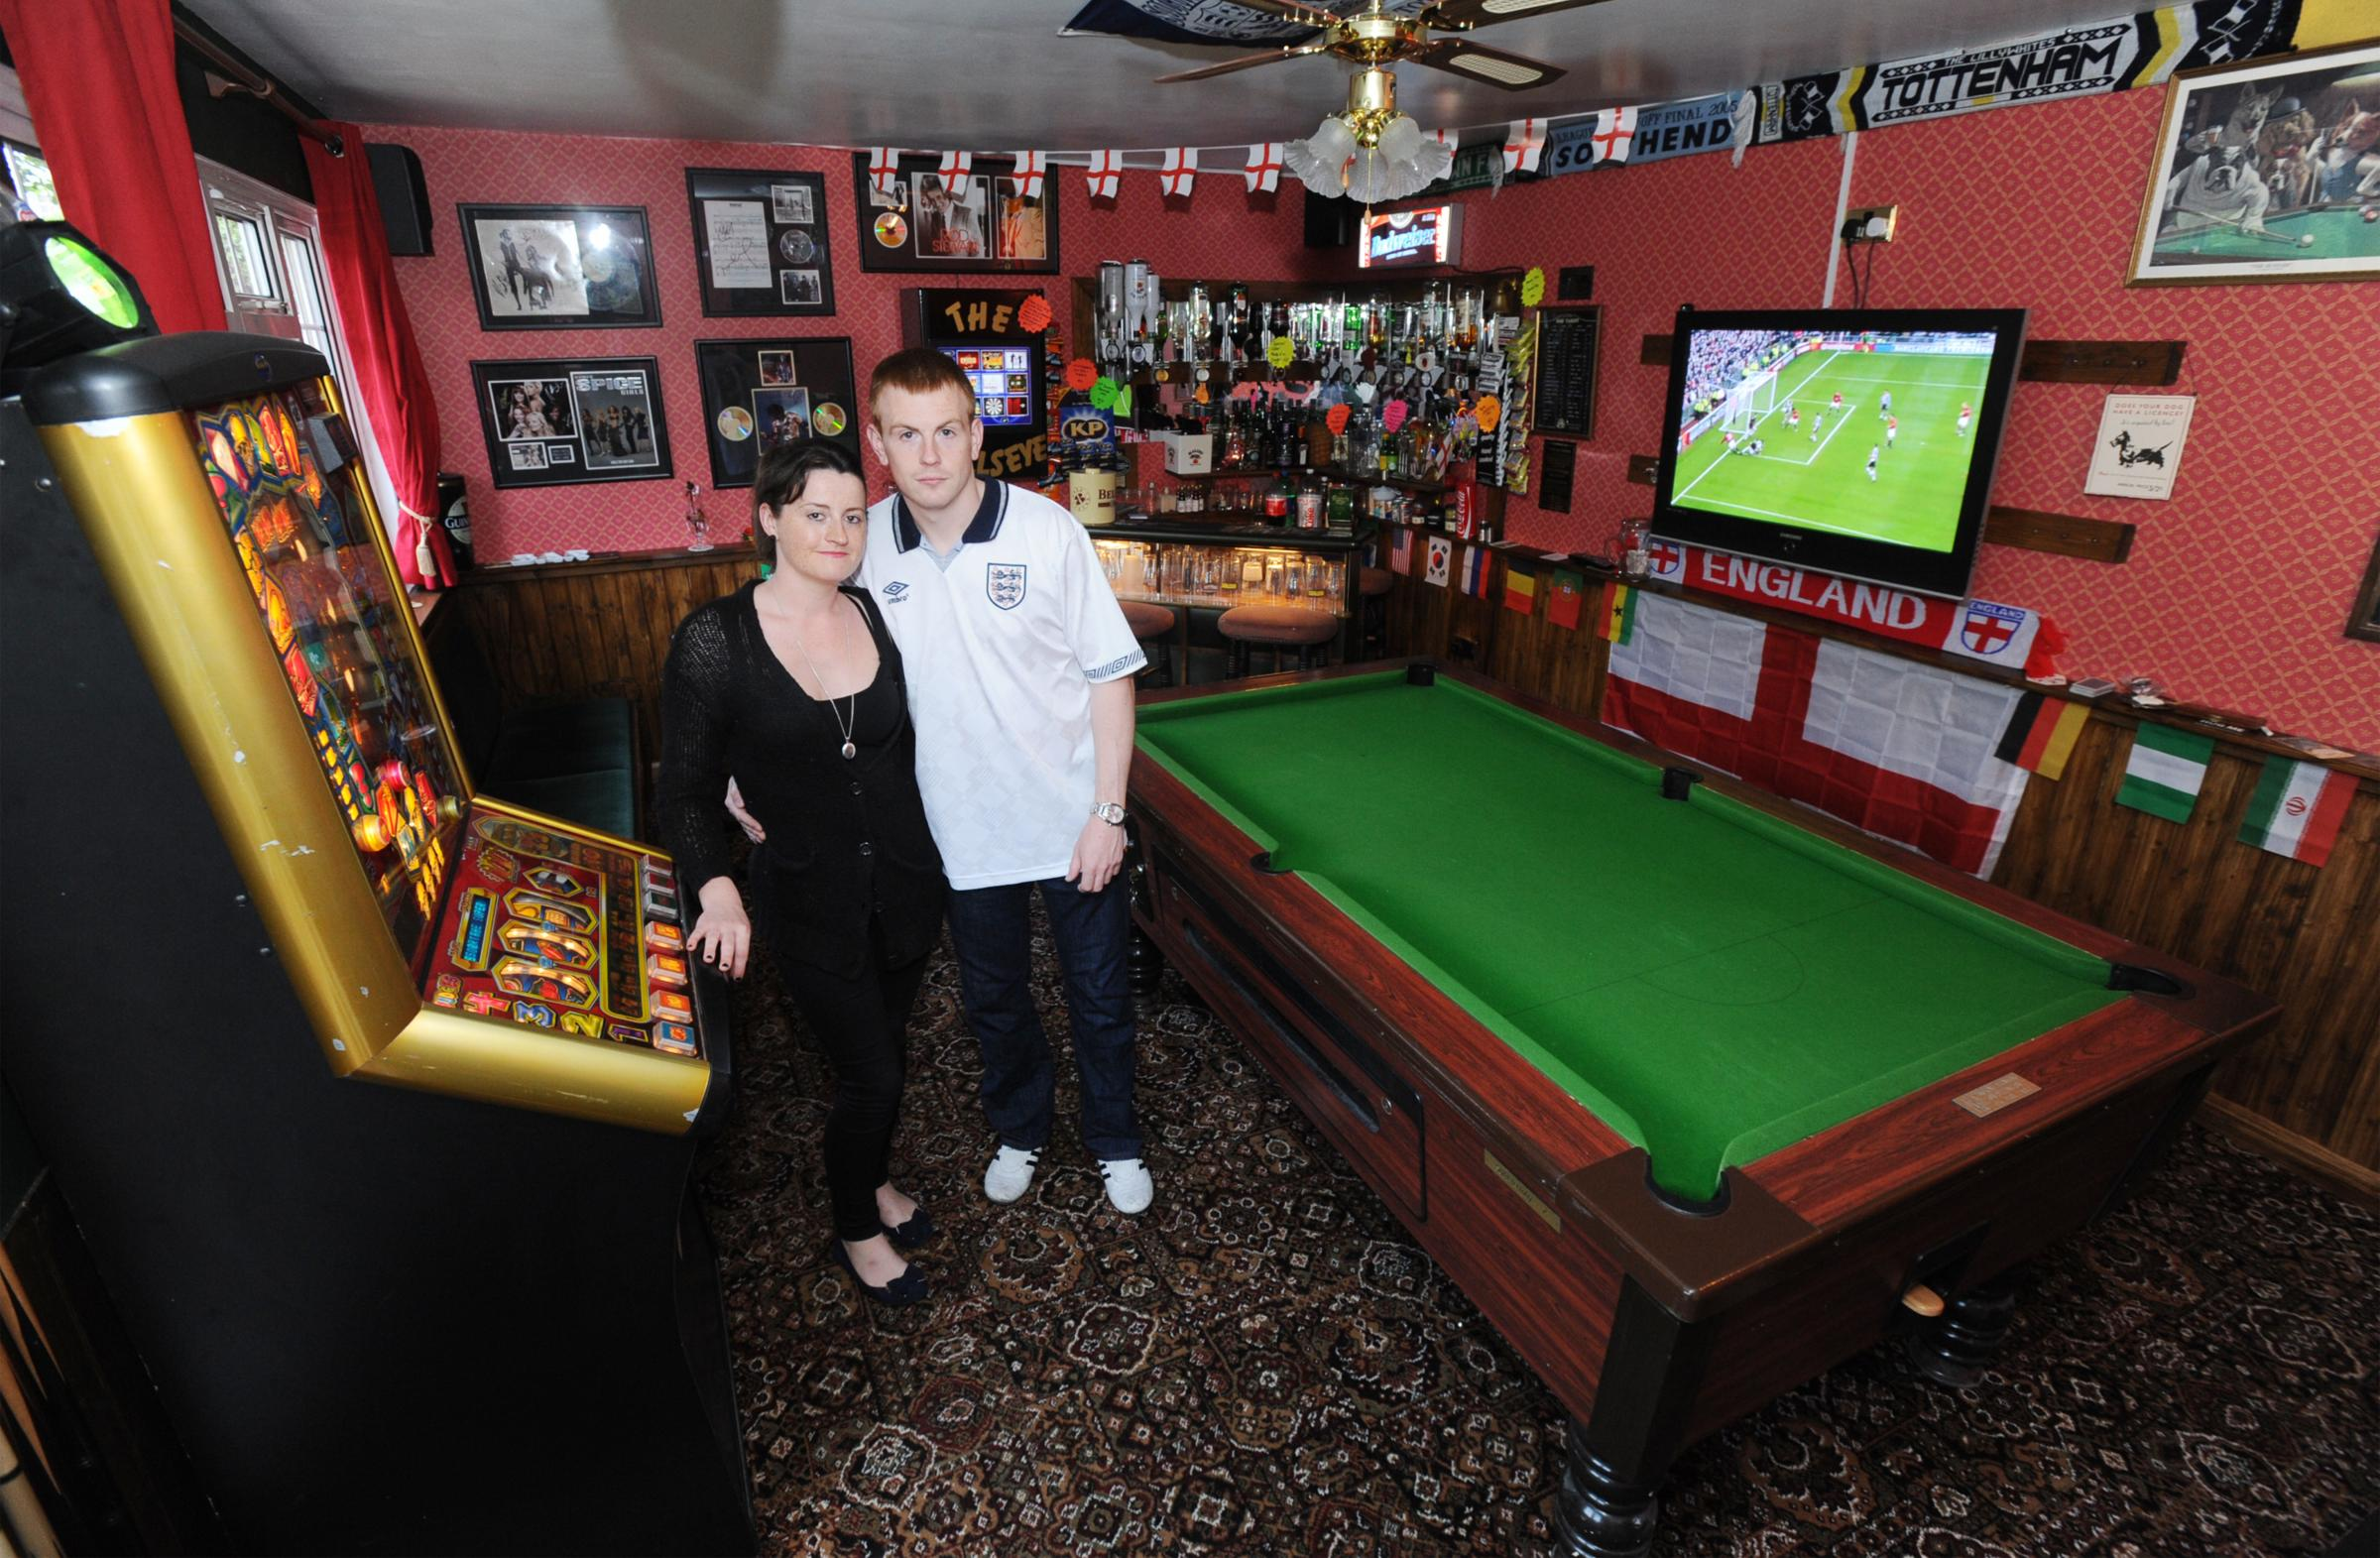 Fantasy football: Southend couple create back yard boozer to enjoy World Cup in style